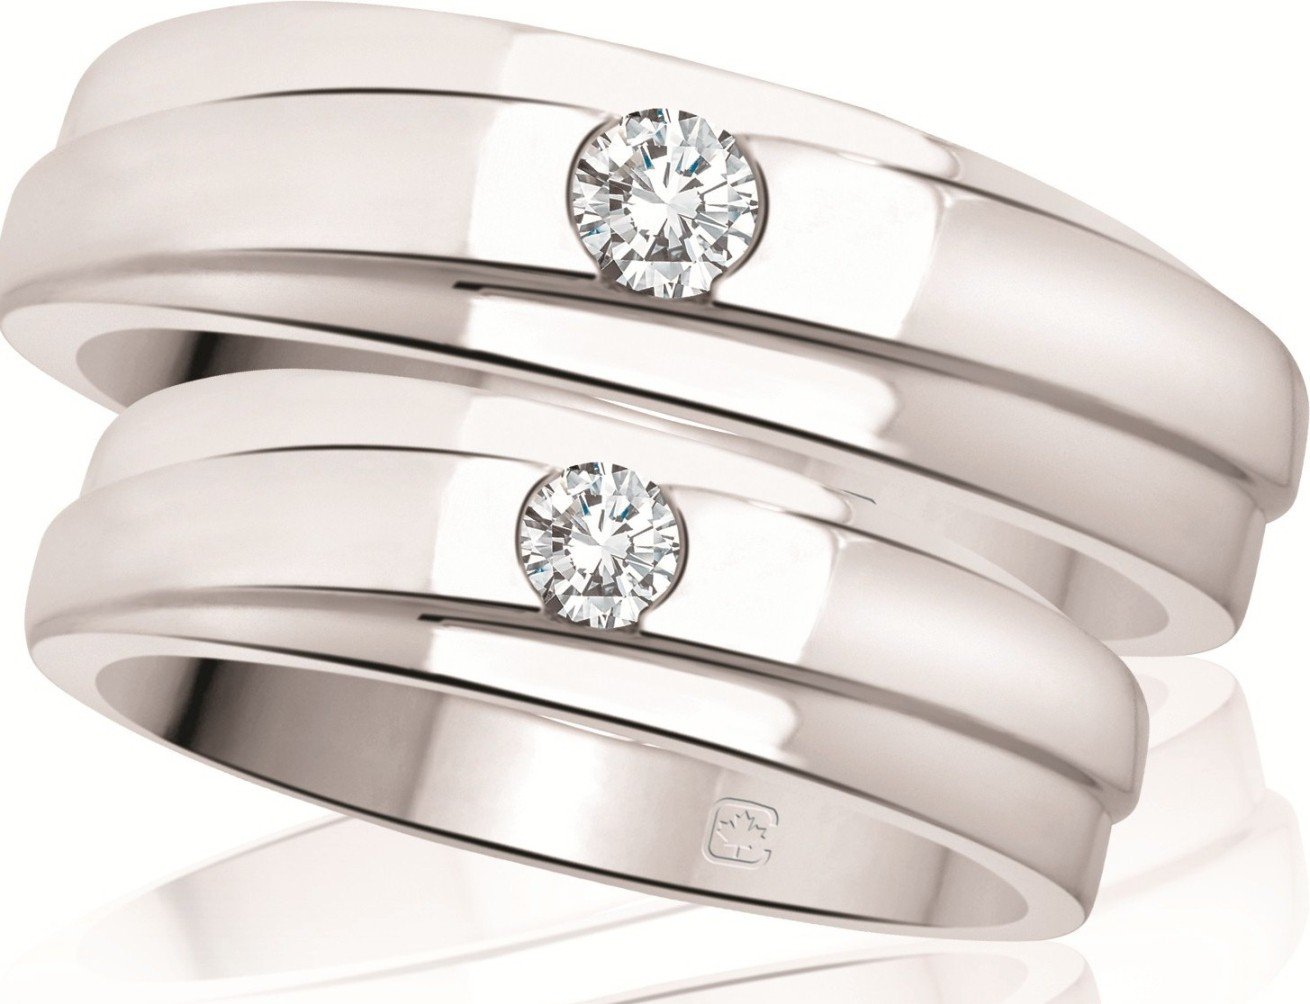 : wendy williams wedding rings